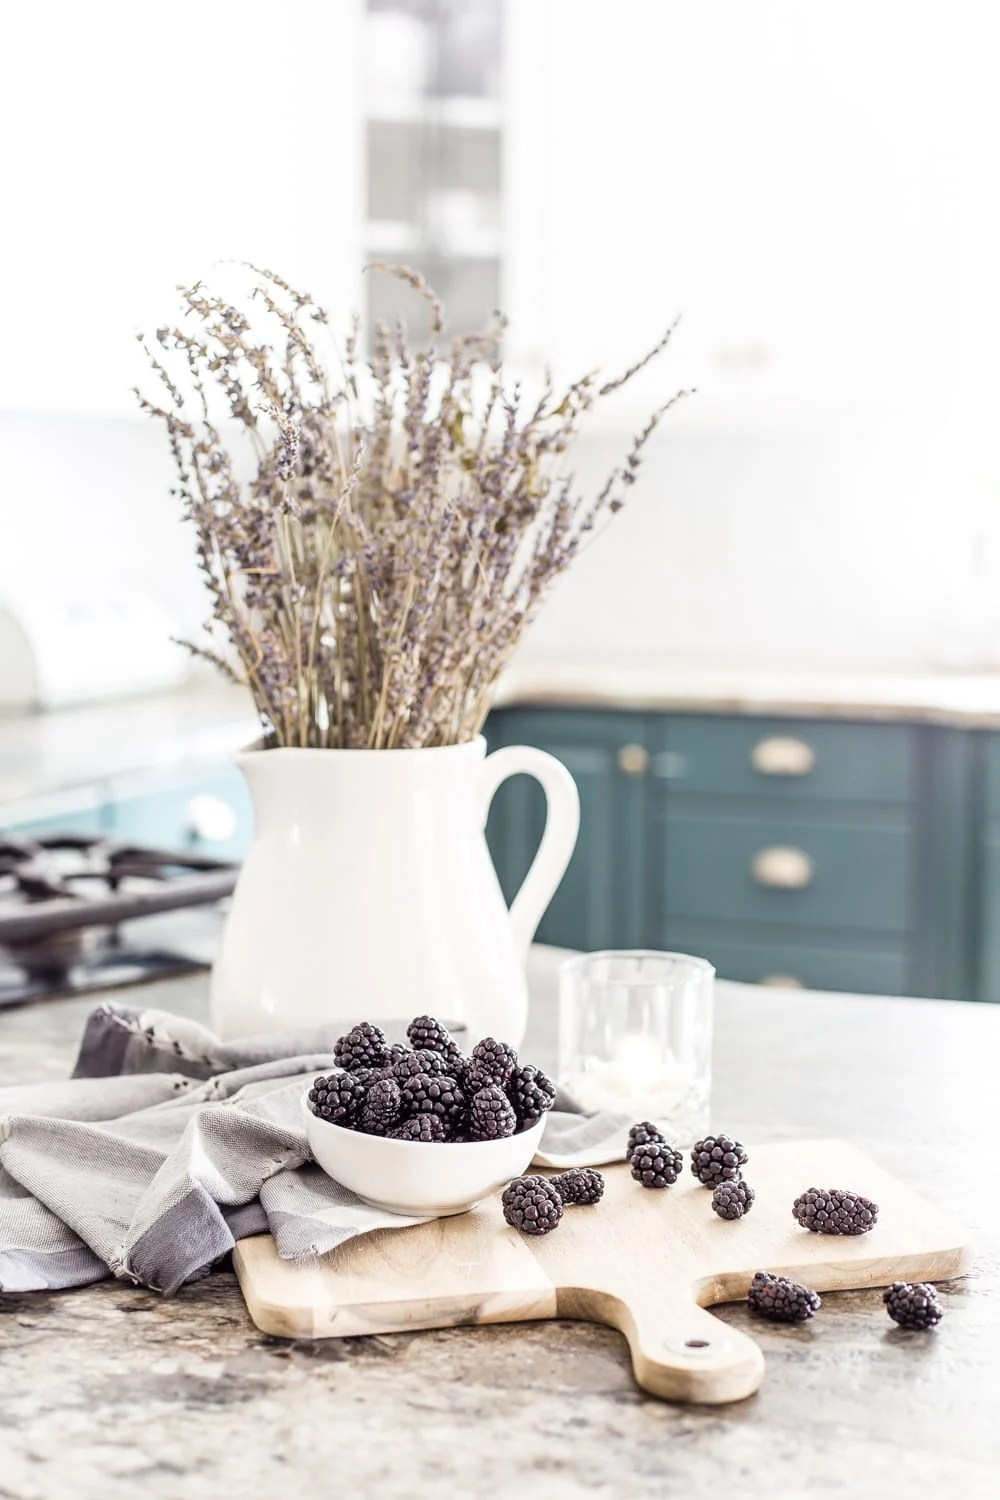 blackberries and French lavender